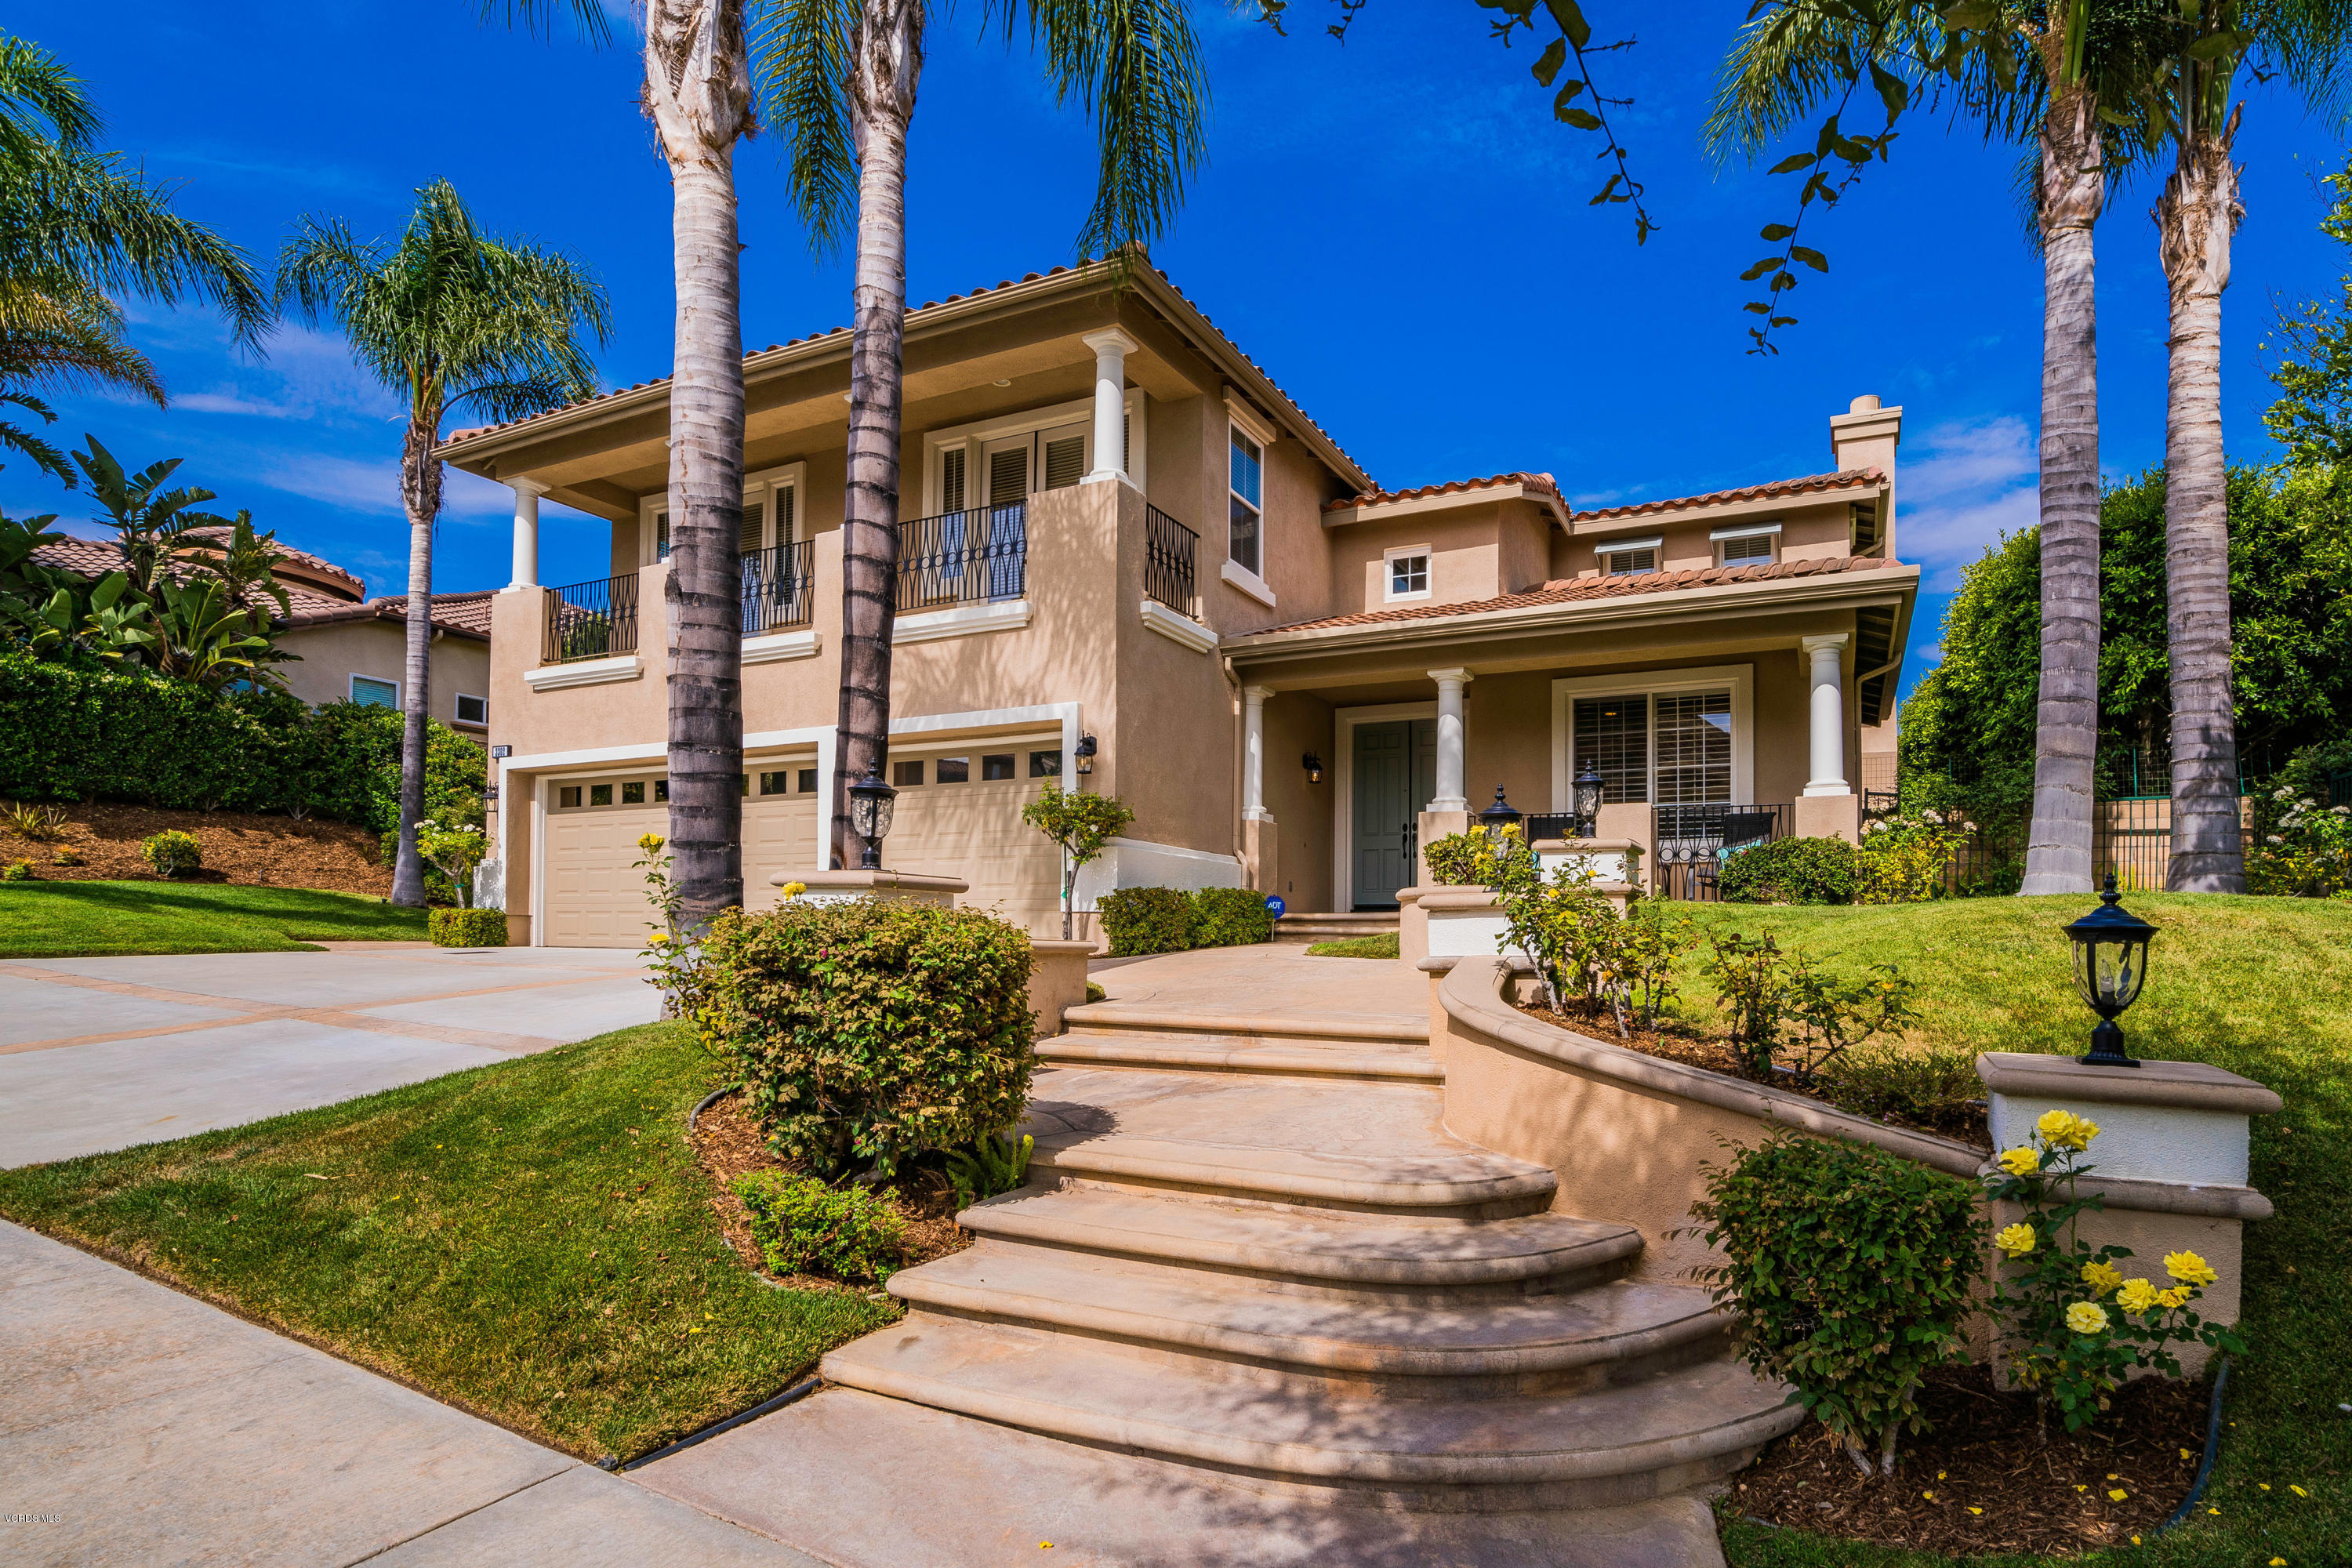 3302 Woodley Avenue, Thousand Oaks, CA 91362